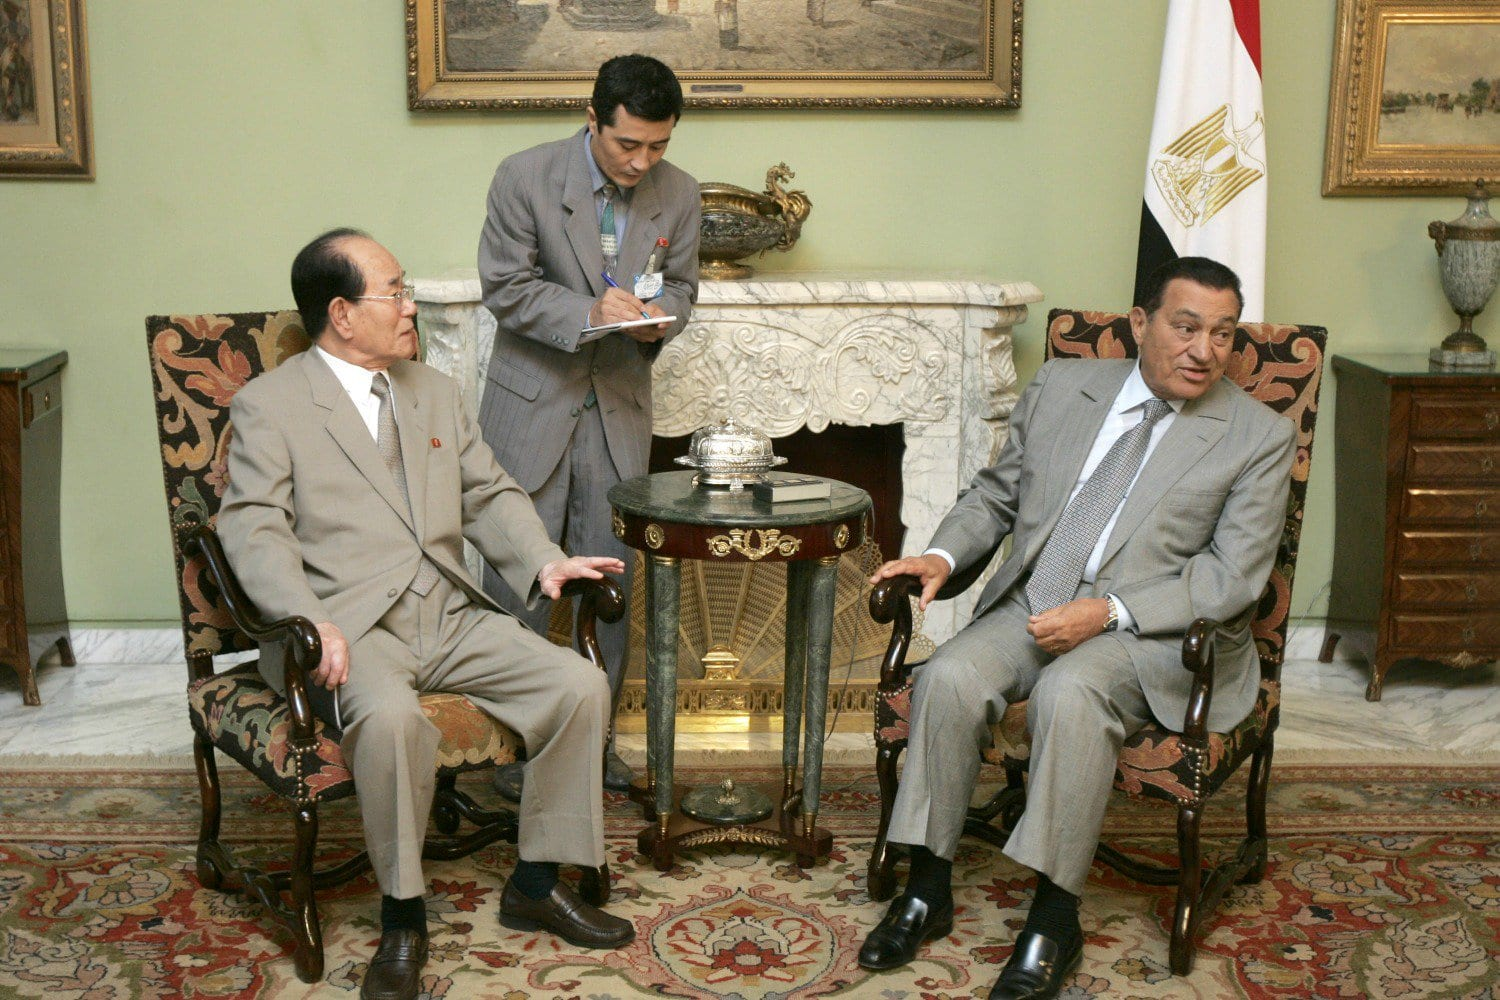 Image KIM YONG-NAM, PRESIDENT OF THE PRESIDIUM OF THE SUPREME PEOPLE'S ASSEMBLY OF NORTH KOREA, MEETS WITH THEN-EGYPTIAN PRESIDENT HOSNI MUBARAK AT THE PRESIDENTIAL PALACE IN CAIRO, EGYPT, JULY 26, 2007 (AP / BEN CURTIS).